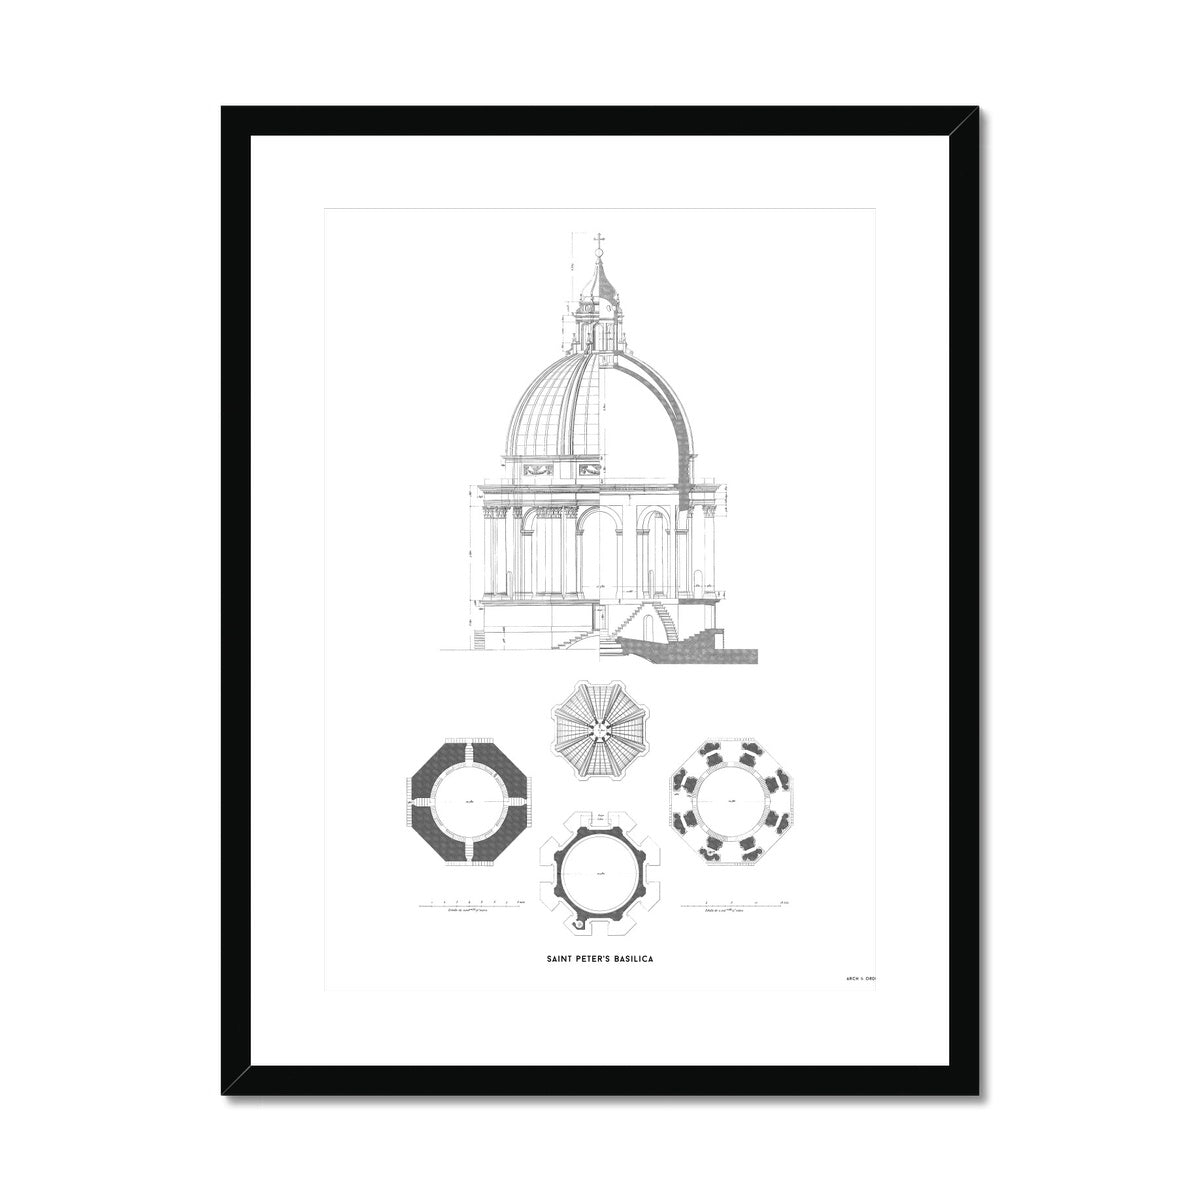 Saint Peter's Basilica - Dome Detail - White -  Framed & Mounted Print